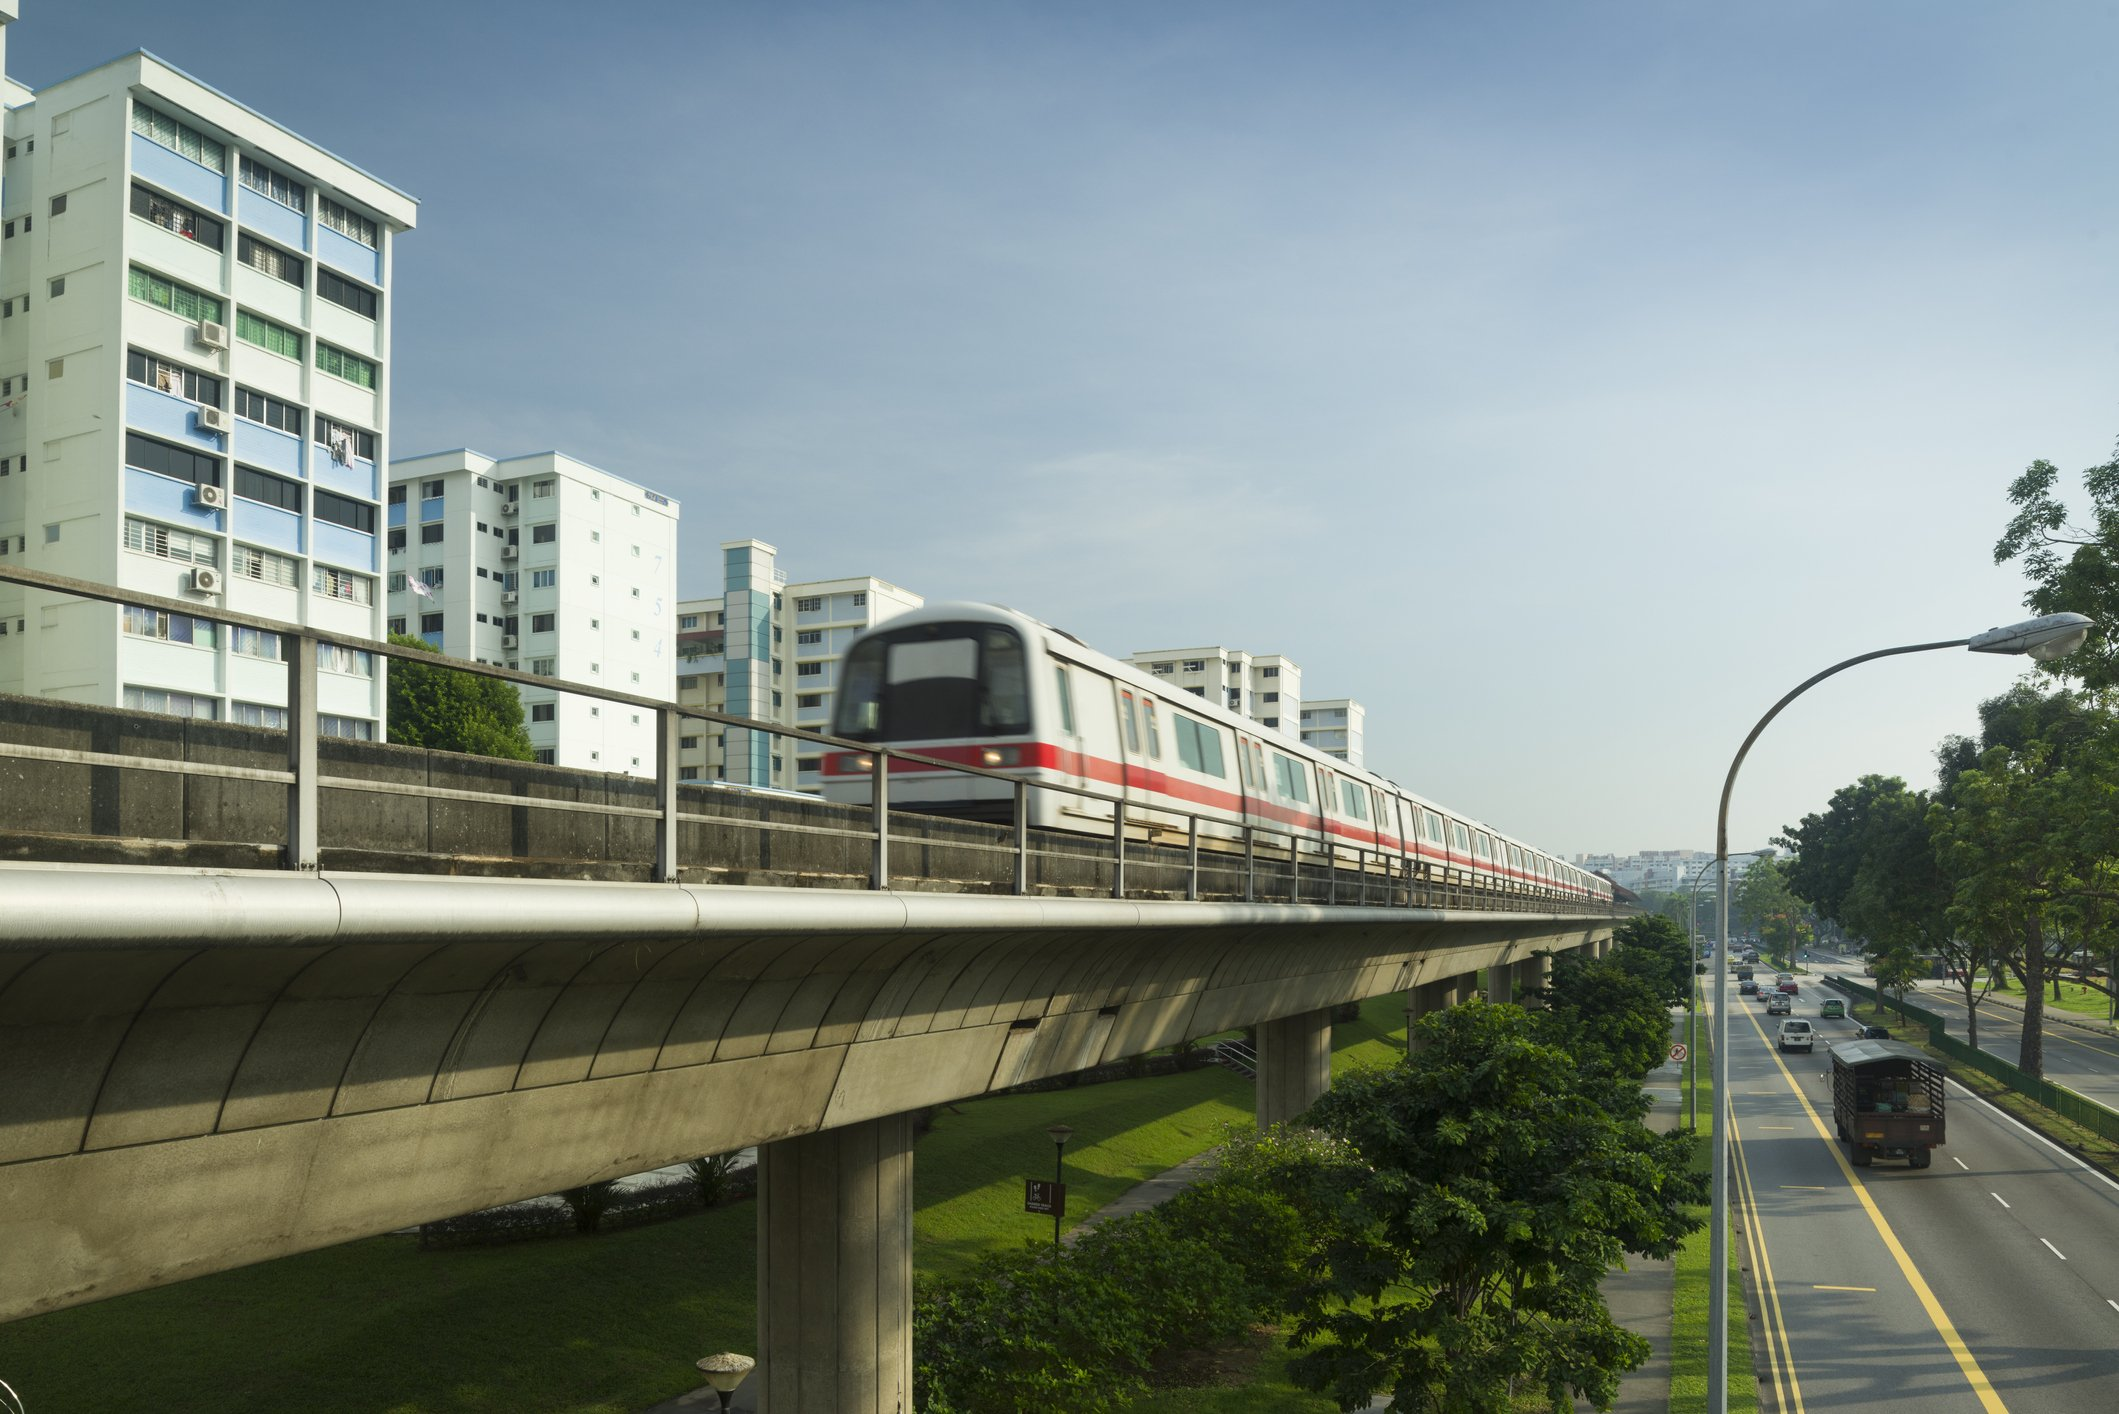 An Mrt train passing by Yishun.